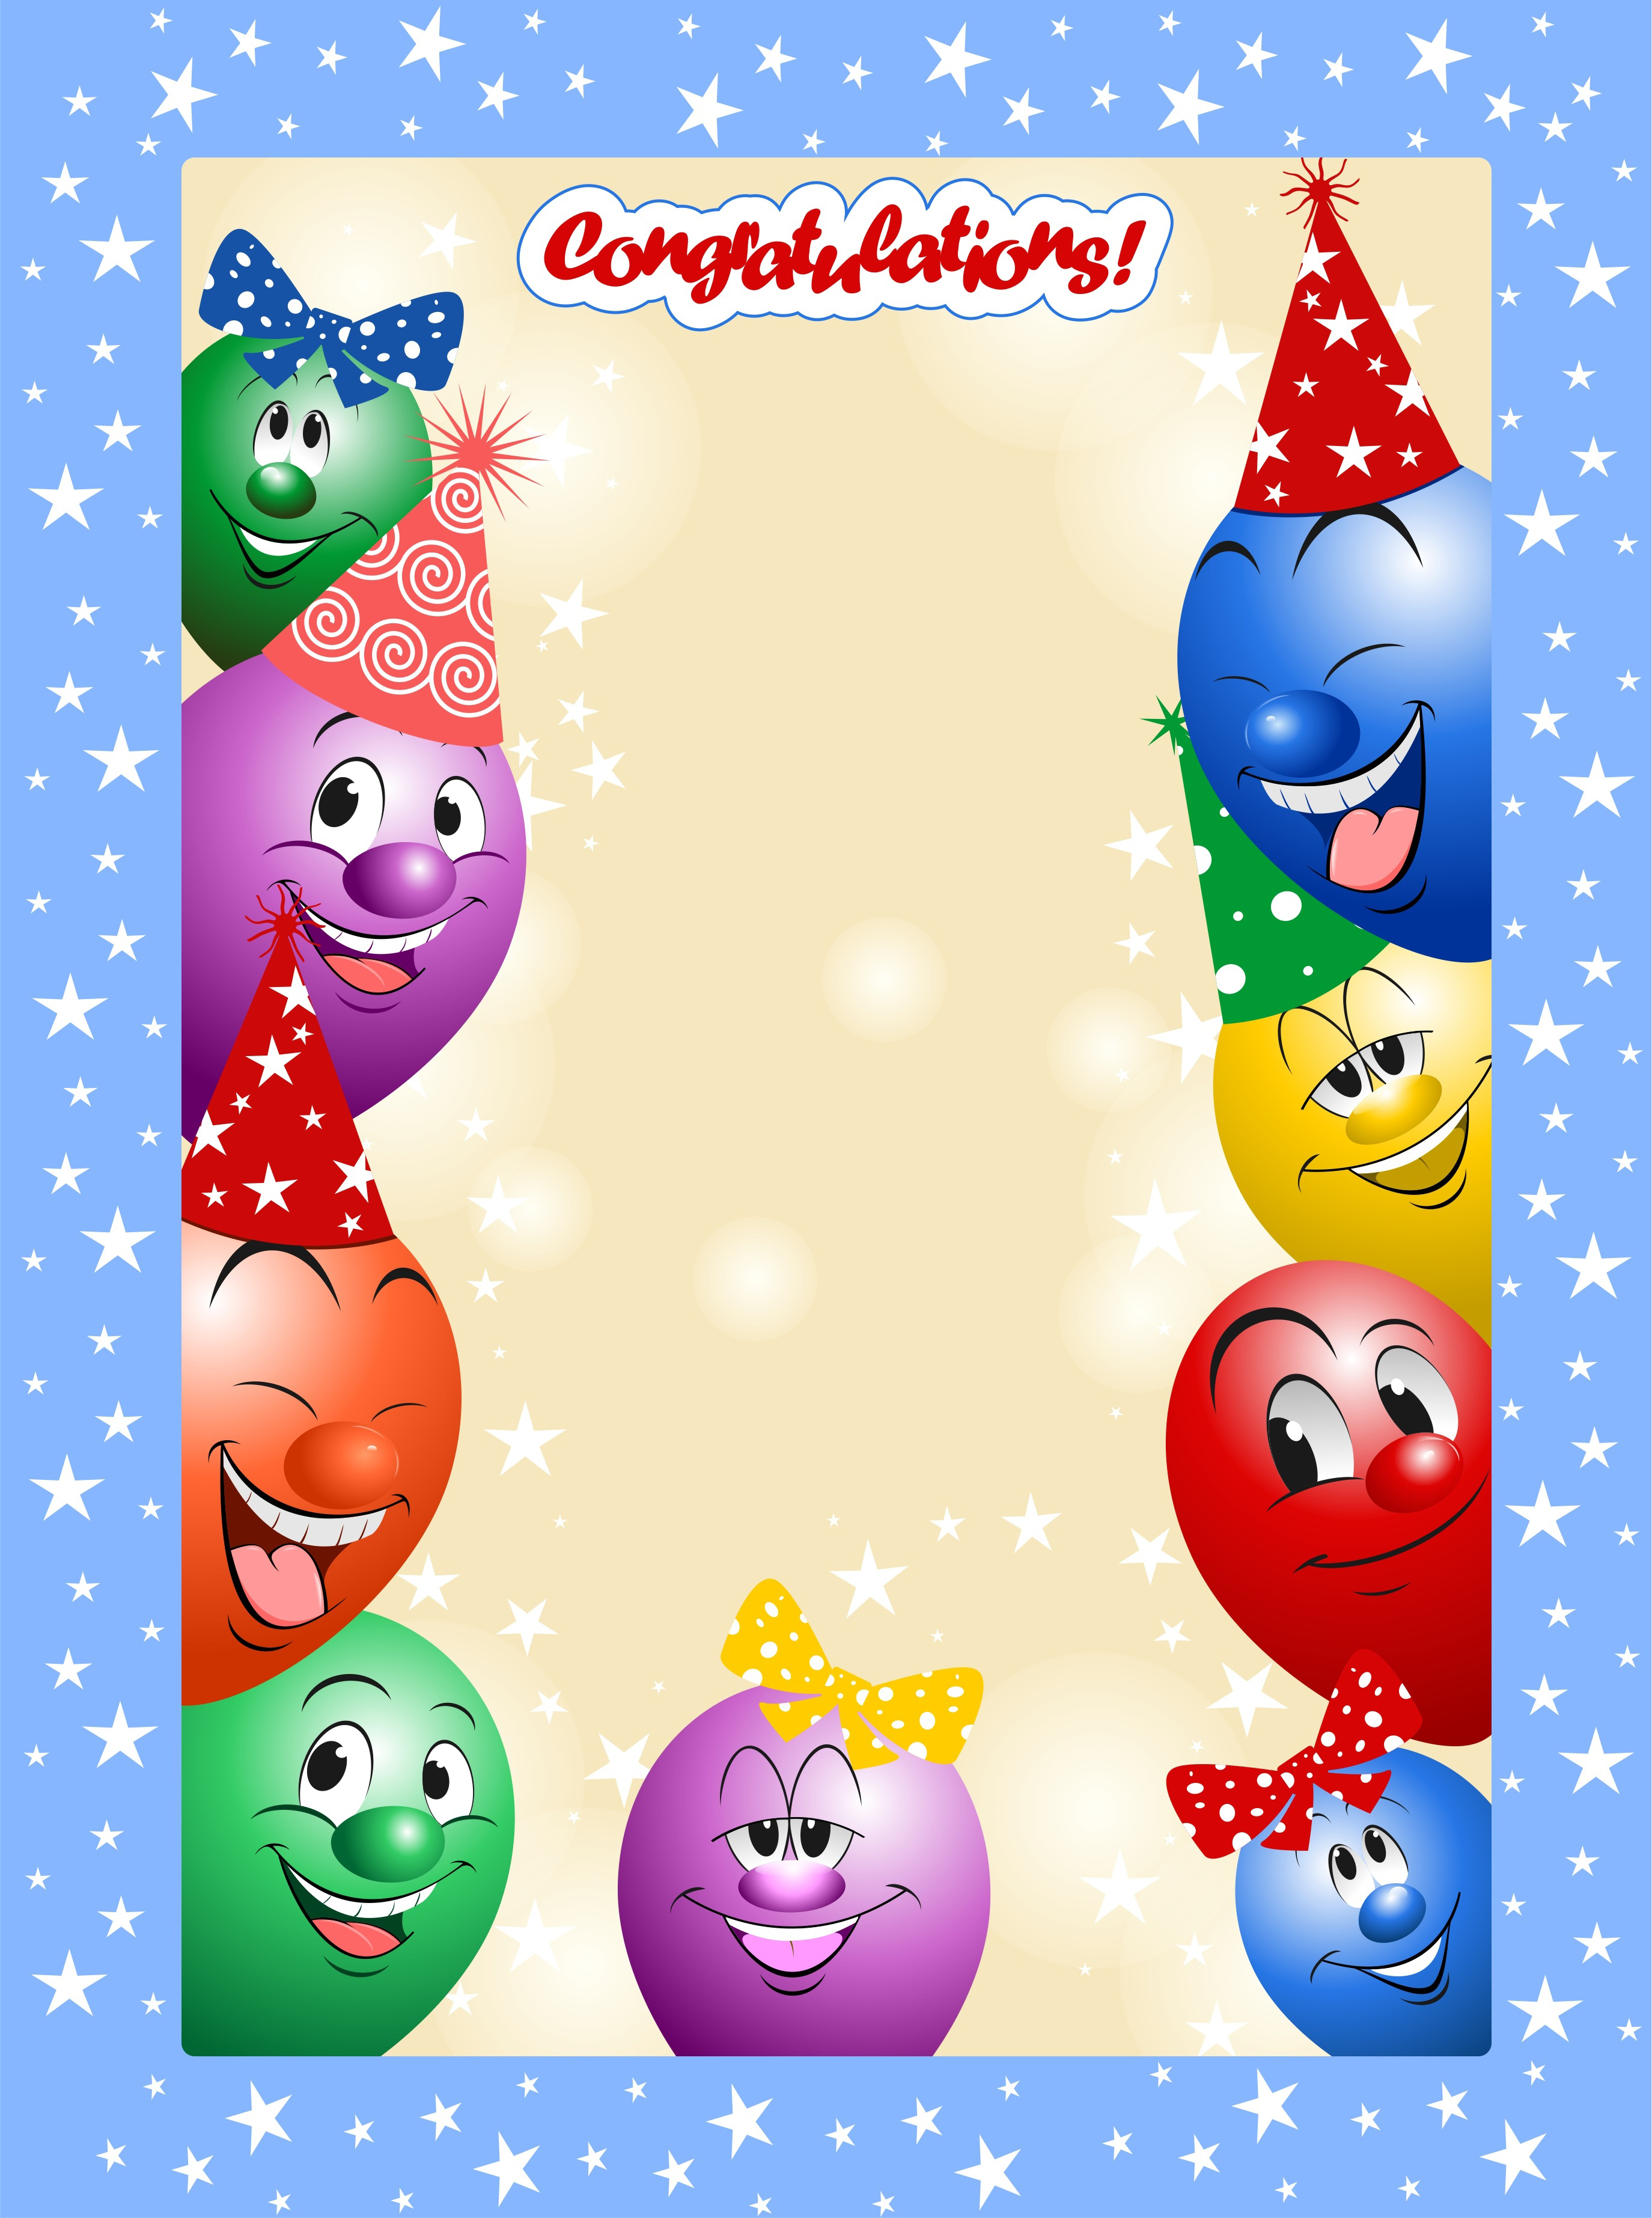 birthday, holiday, ball, funny, smile, cartoon,